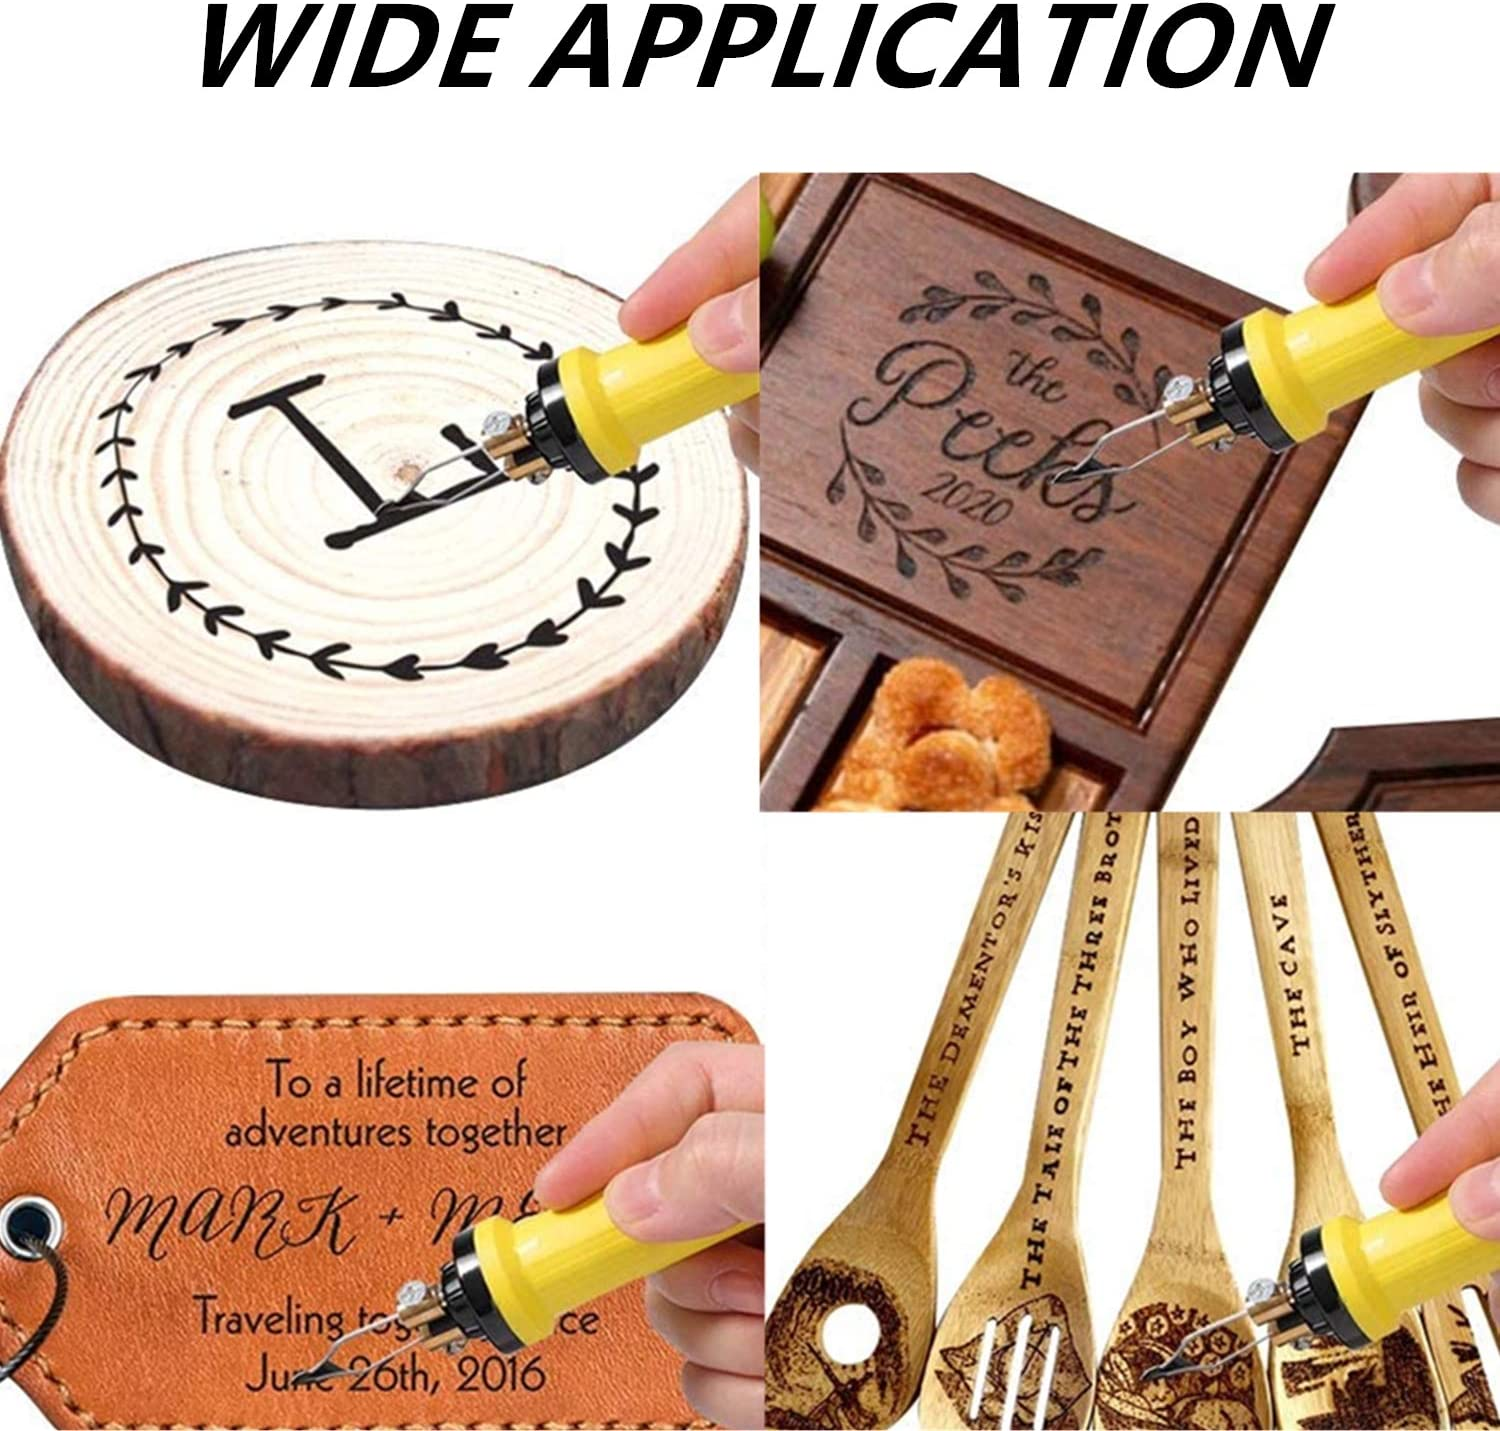 60W Pyography Wood Burning Tool Kit Used As Wood Carving Engraver for Wood Leather and Gourd with 2 Wood Burning Stencil Pen and 20pcs Pyrography Wire Tips YaeCCC Wood Burning Kit